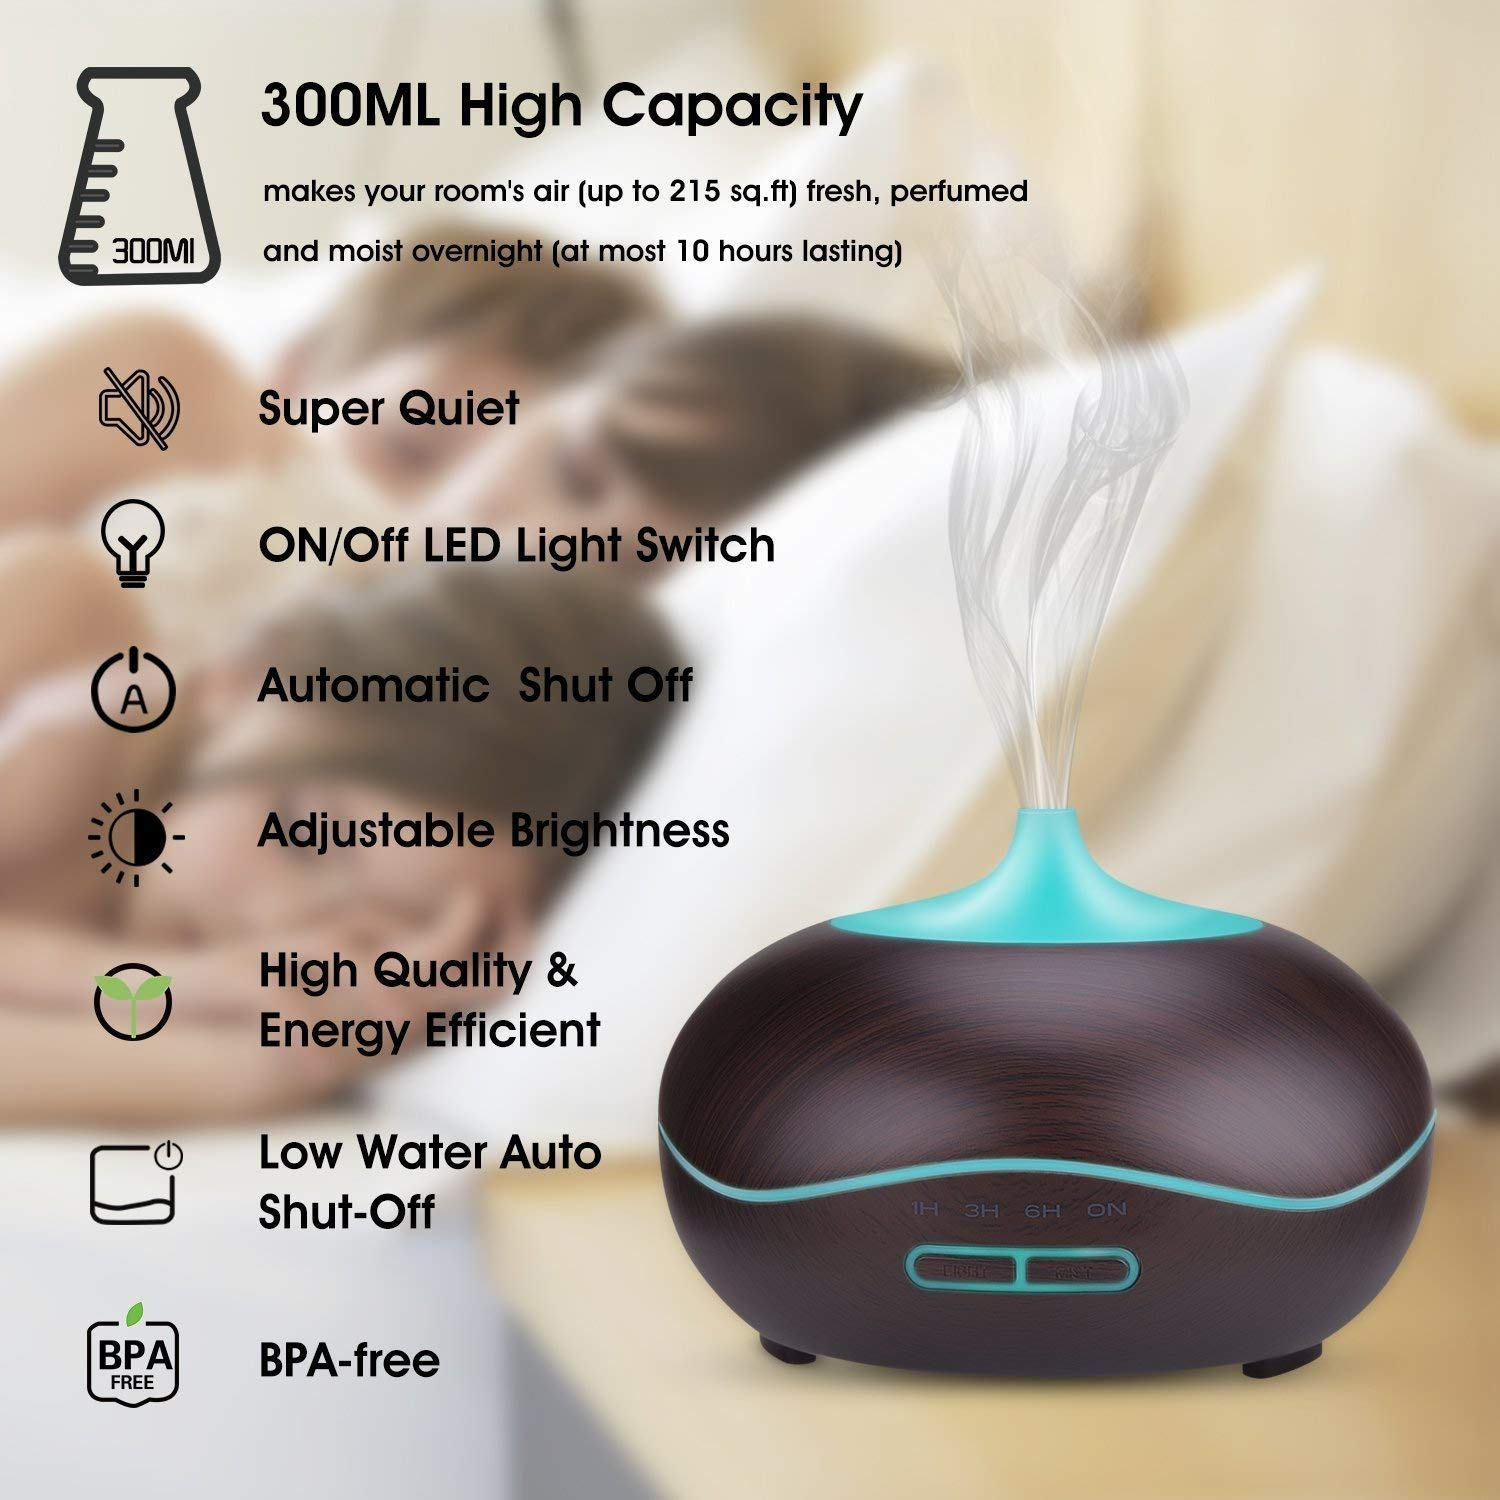 Essential Oil Diffuser, Cool Mist Ultrasonic Aroma Diffuser, Air Humidifier Wood Grain with Waterless Automatically Shut-off for Office Home Yoga Spa-Black …